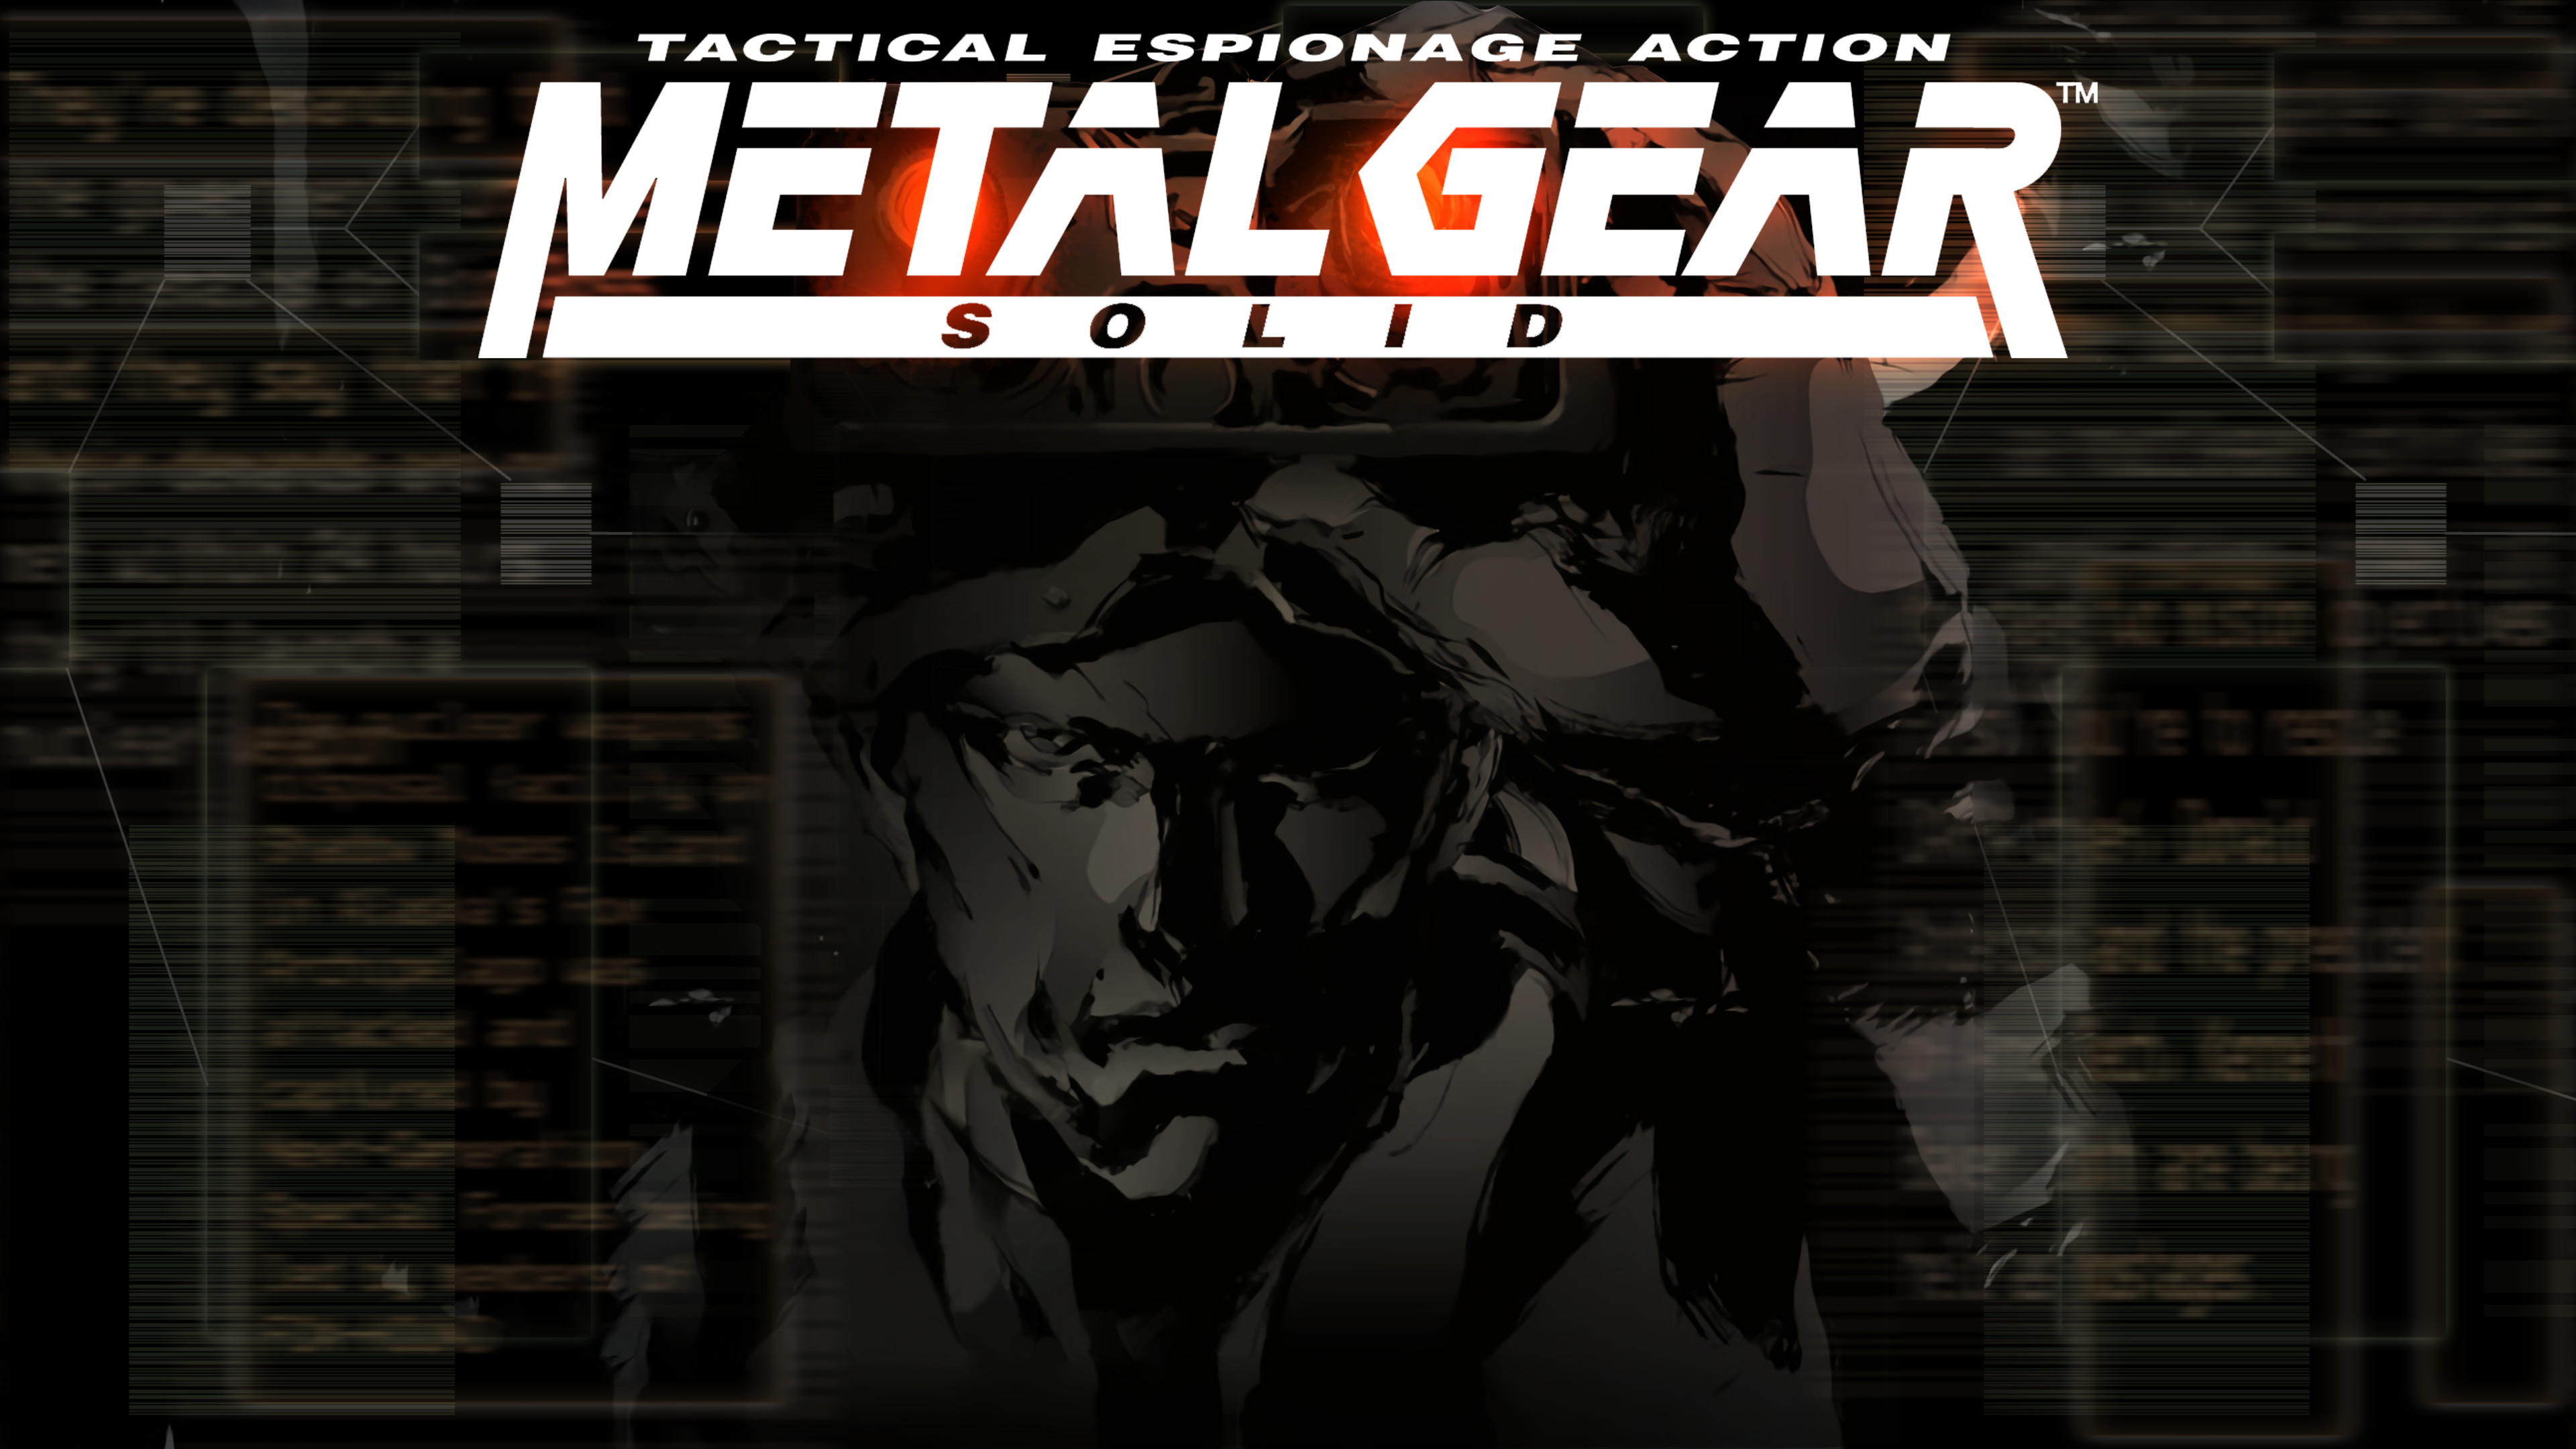 3840x2160 Metal Gear Solid Wallpaper Dump